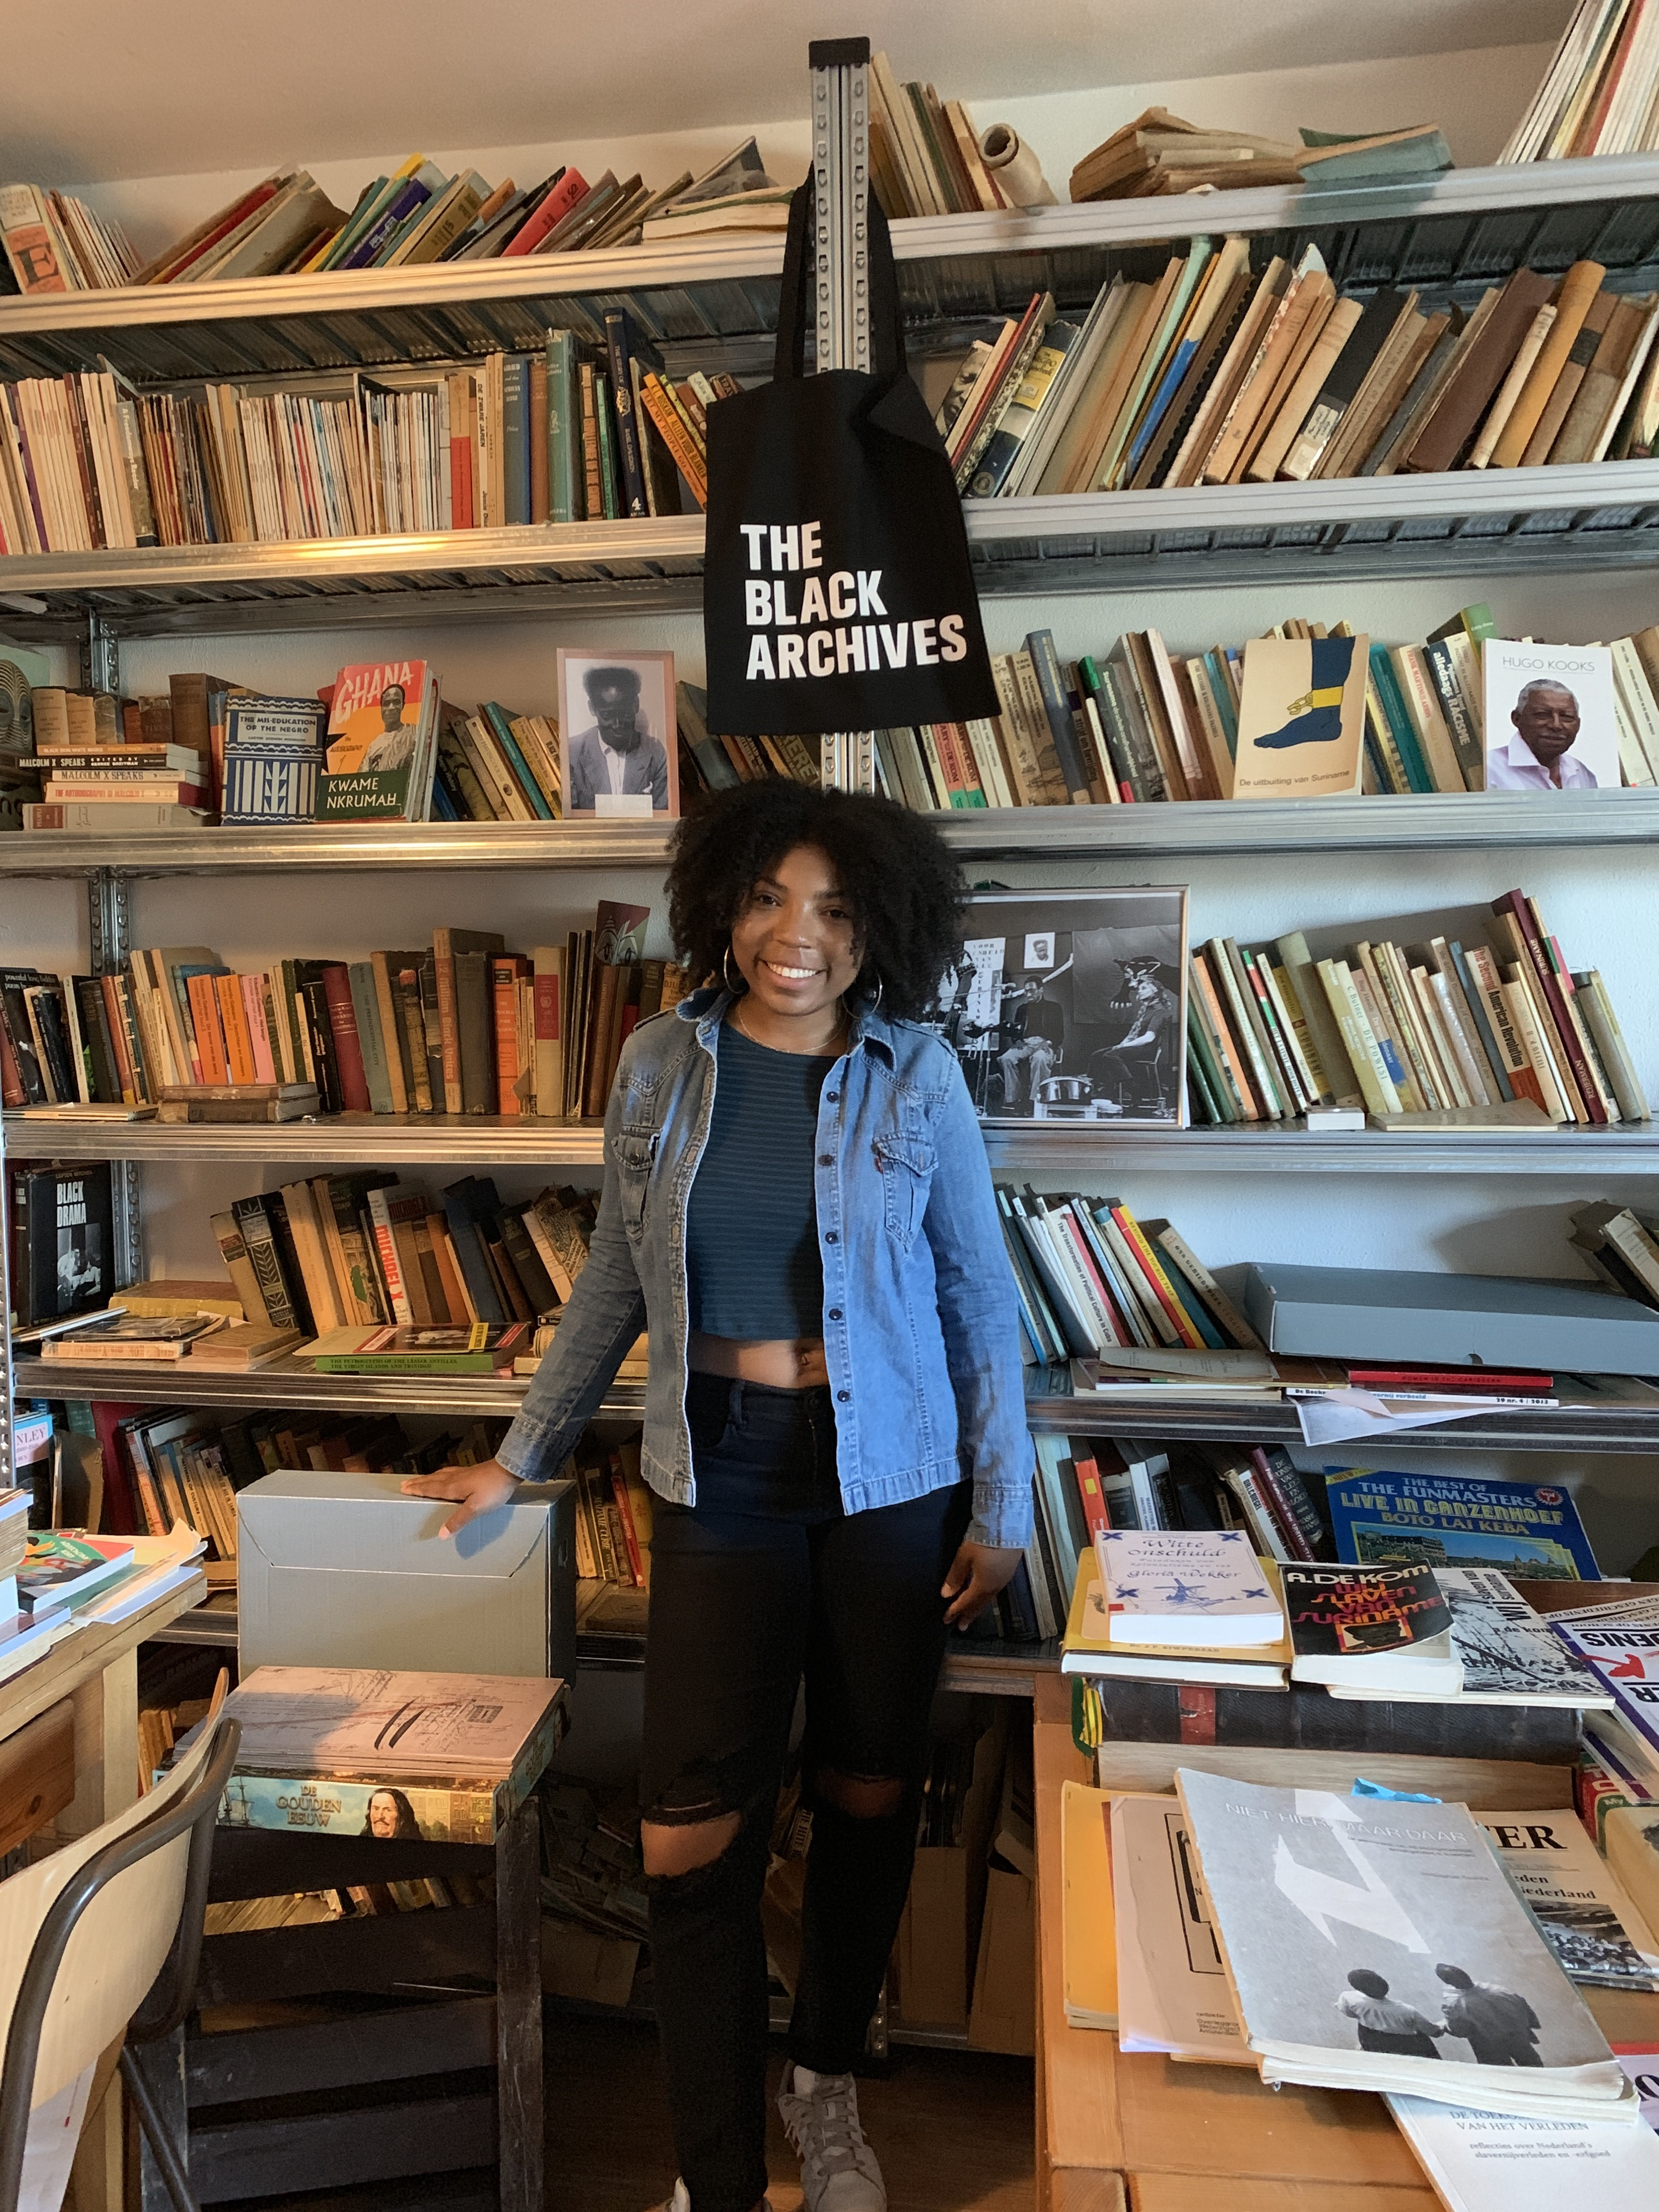 Kellan in front of two bookcases featuring Afro-Dutch people and a sign that says The Black Archives.